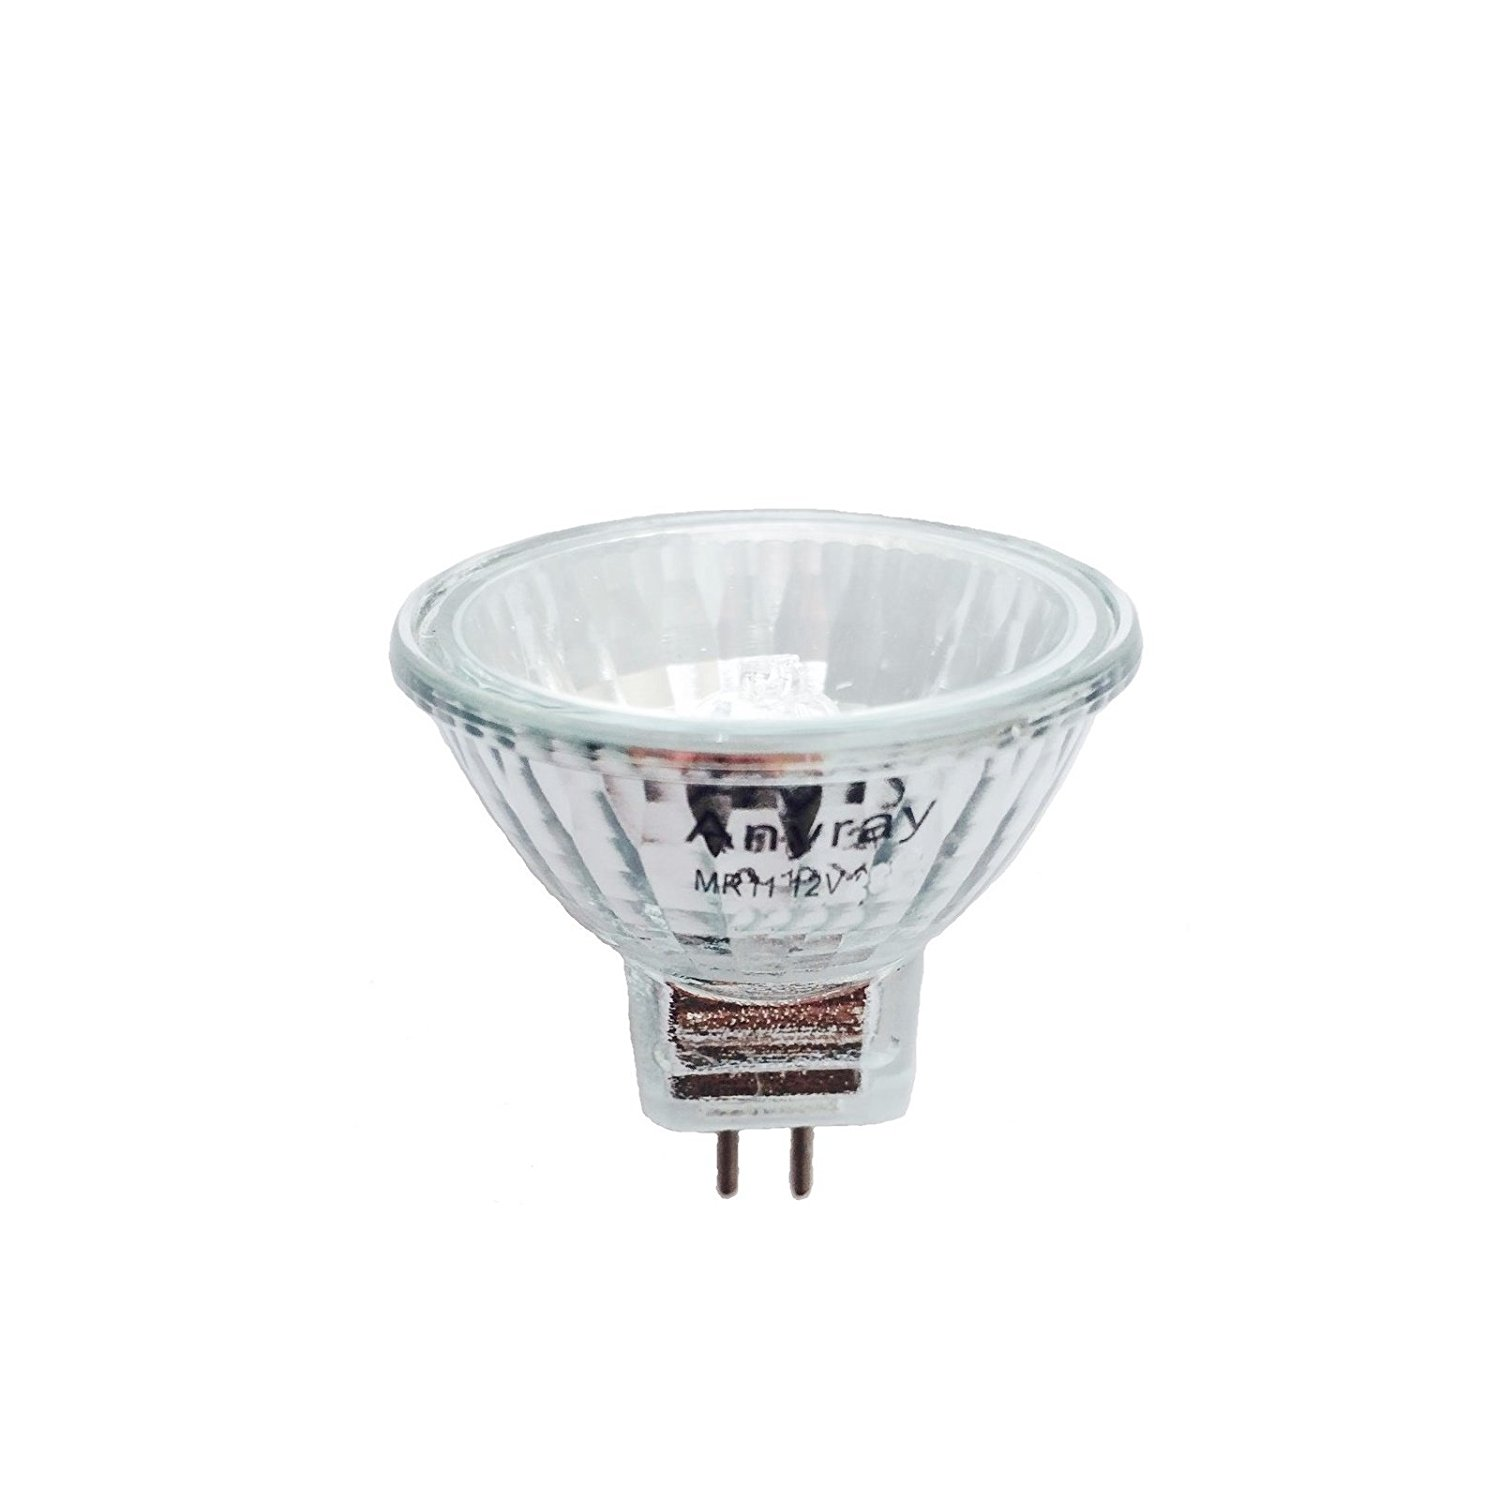 Anyray A2015Y 12-Watts MR8 12V 12W Halogen Light Bulb 12-Volts 10-Pack